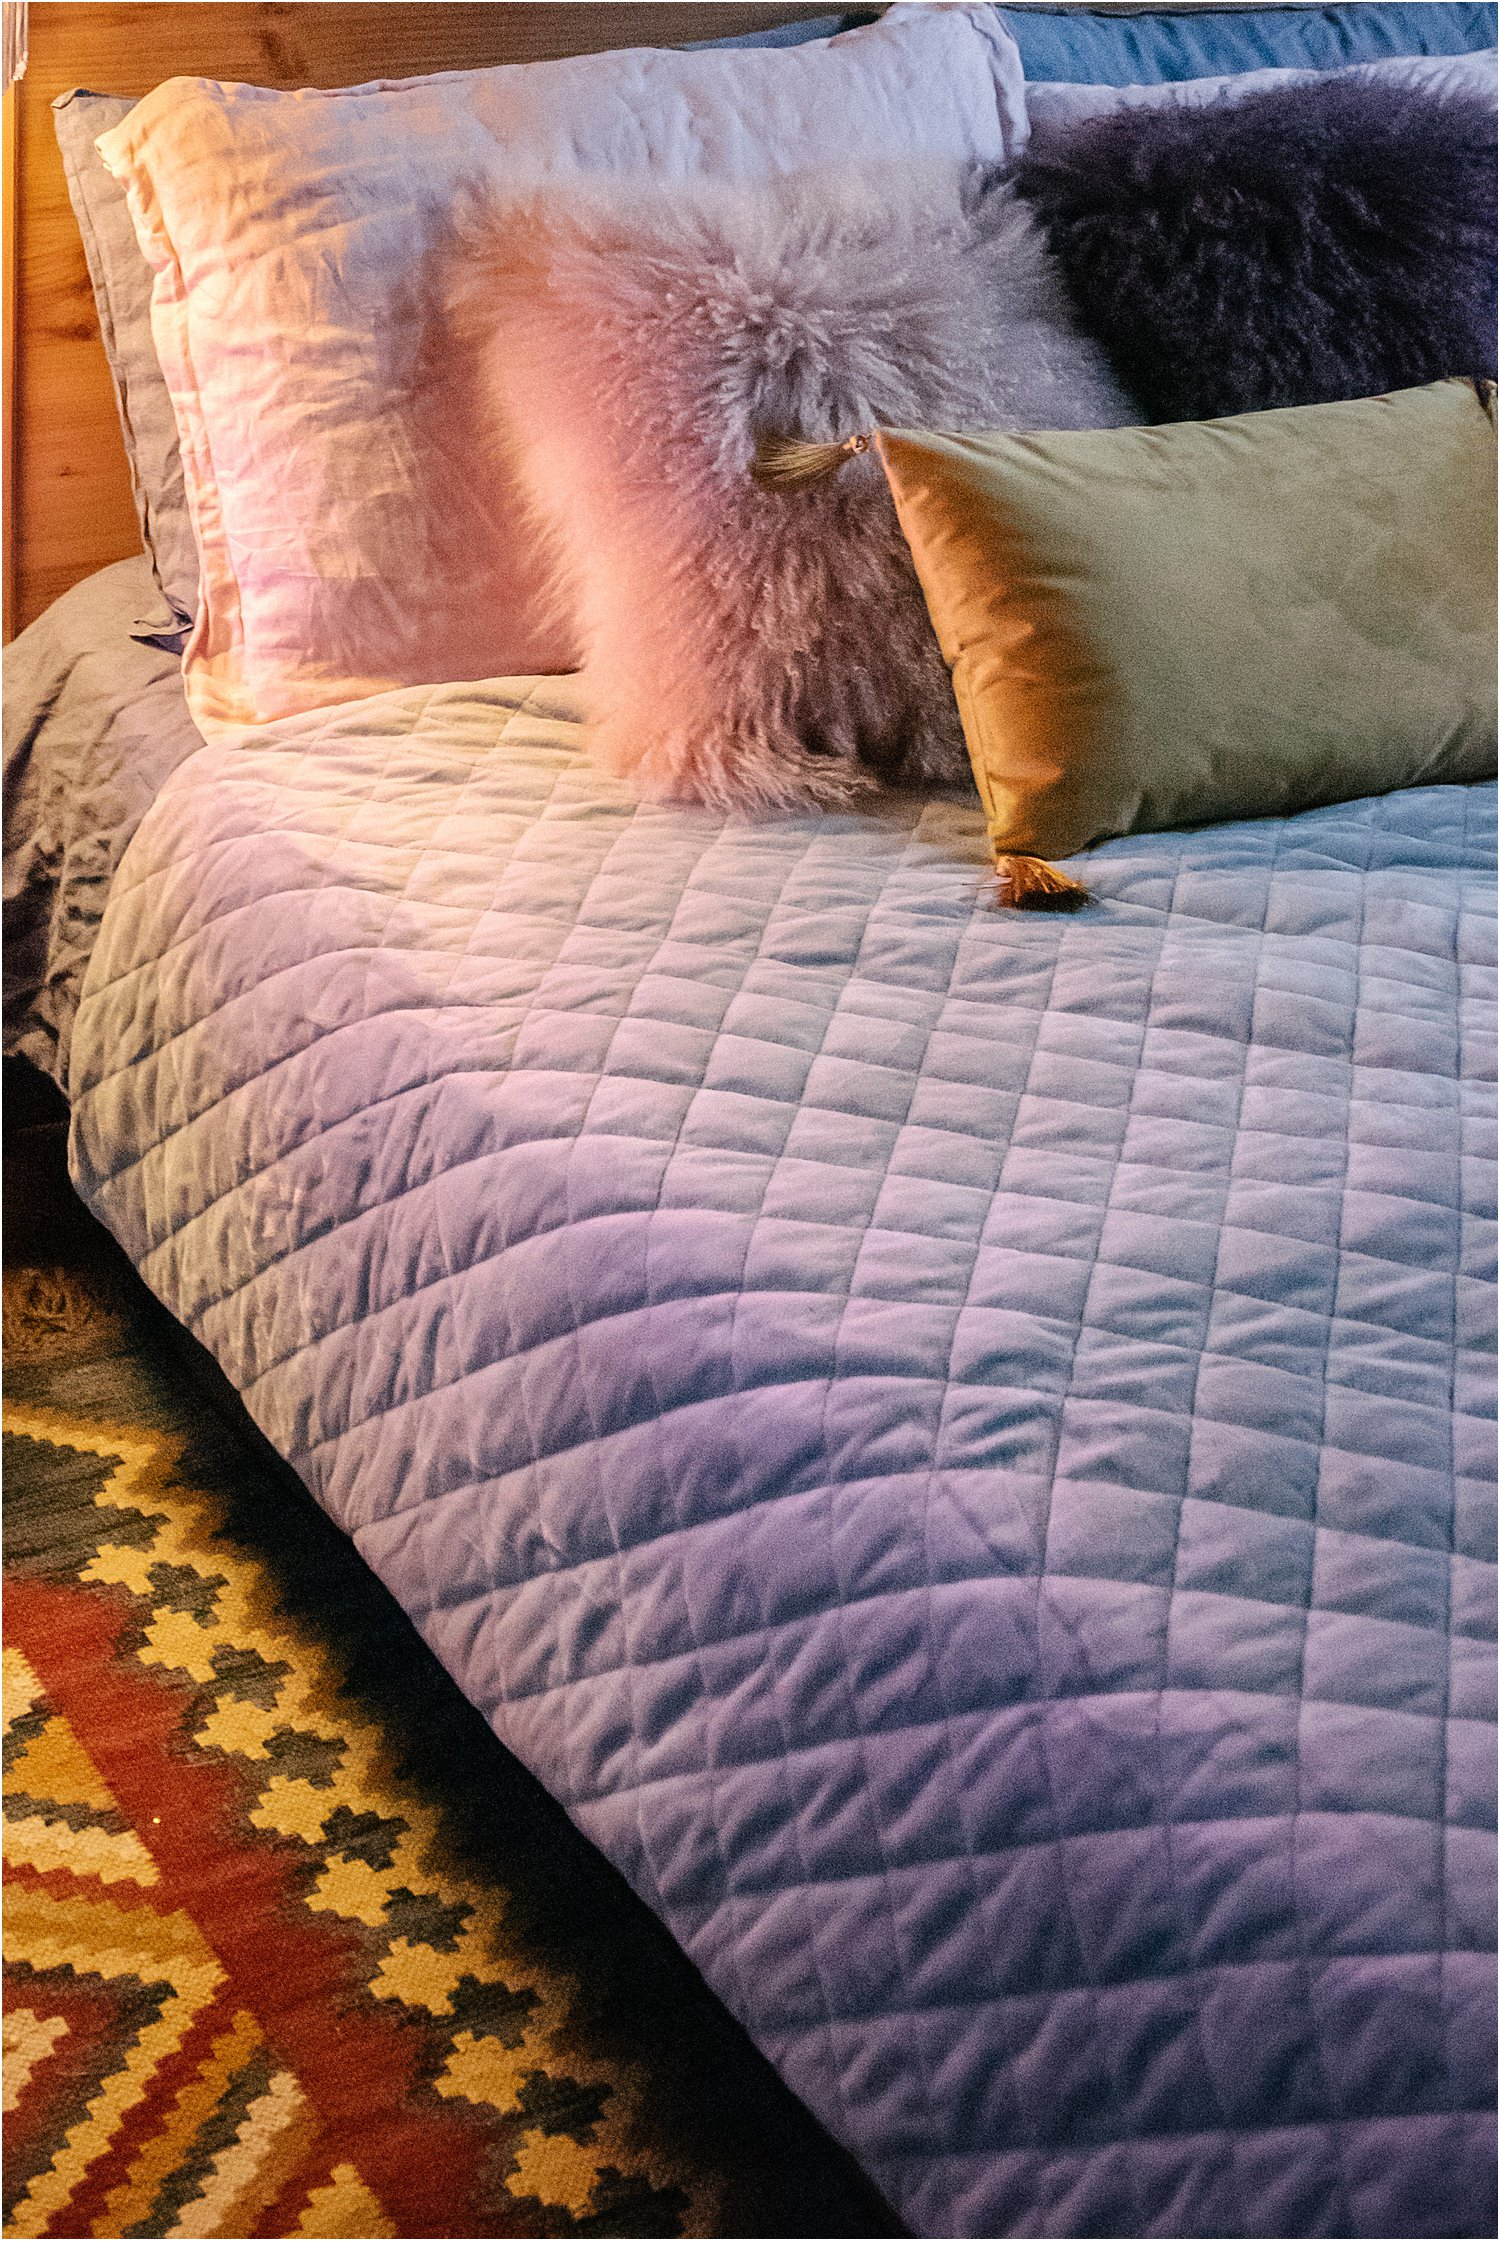 product-review-Kalm-Koala-weighted-blanket-duvet